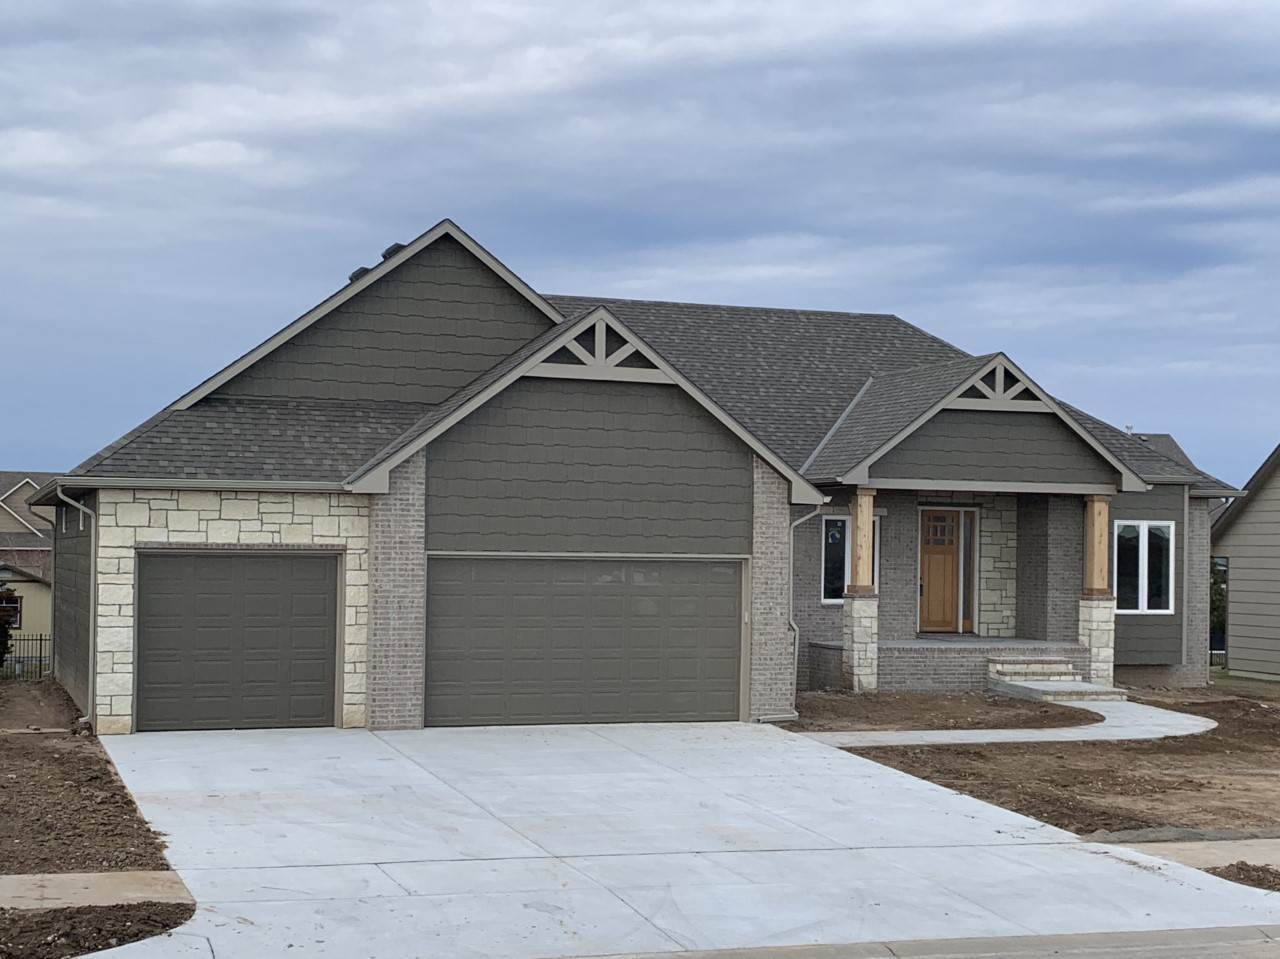 Great new home with a 4 car garage, 19 x 7 front porch, 18 x 12 covered deck, open floor plan, 95% g